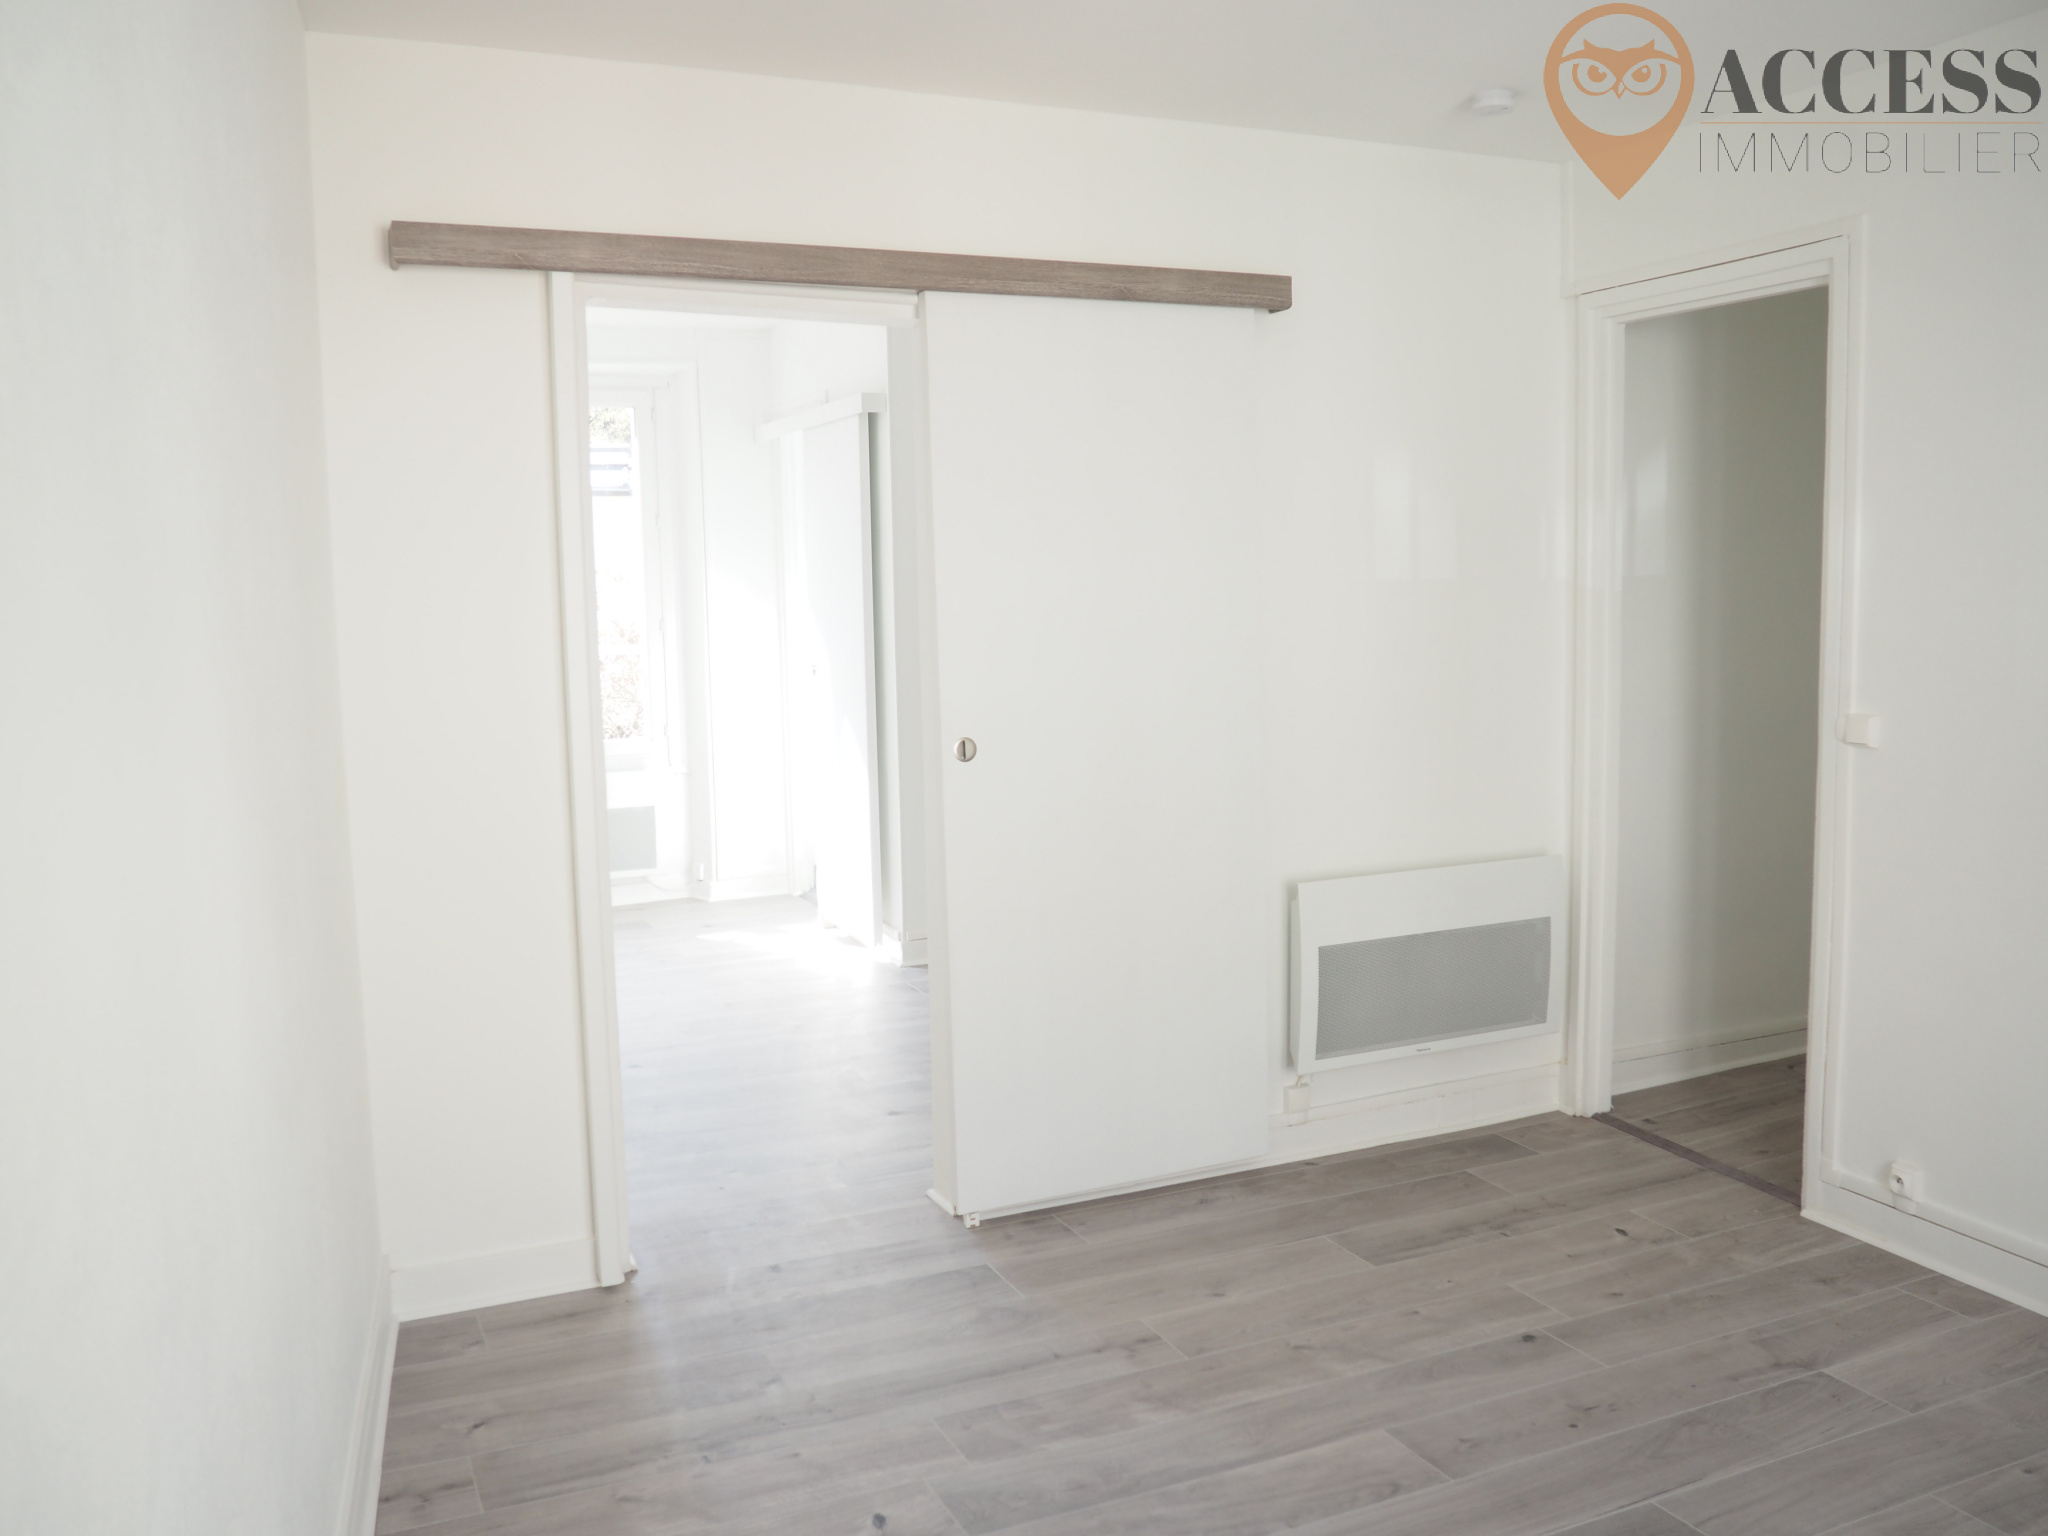 Appartement 35m2 Photo Location Saint Brice Sous Foret Appartement Type F2 De 35m2